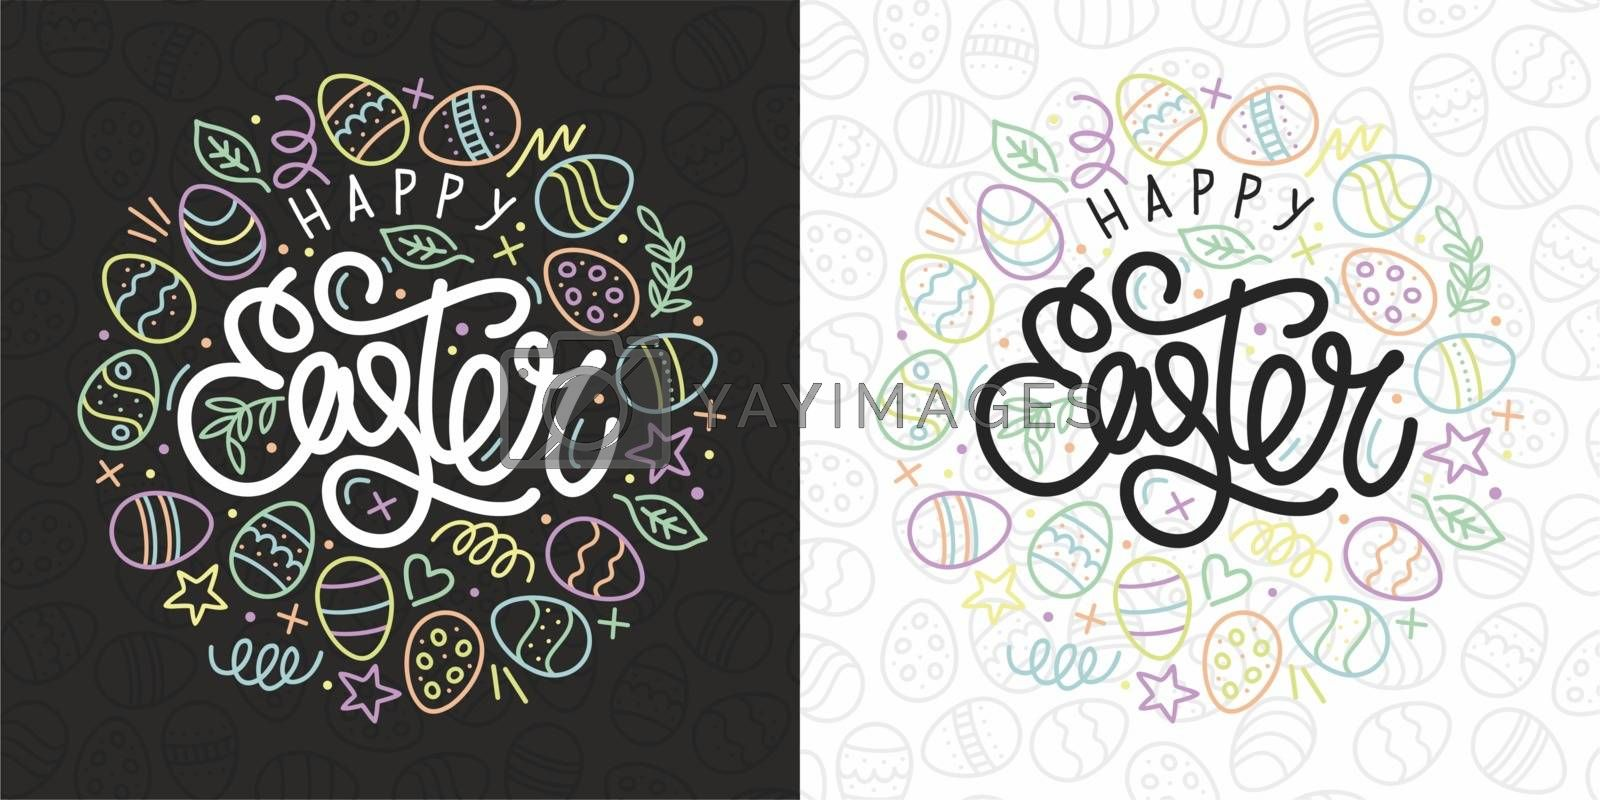 Happy Easter Vector Typograpy As Logotype, Badge and Icon, Easter Postcard, Card, Invitation, Flyer, Banner Template.